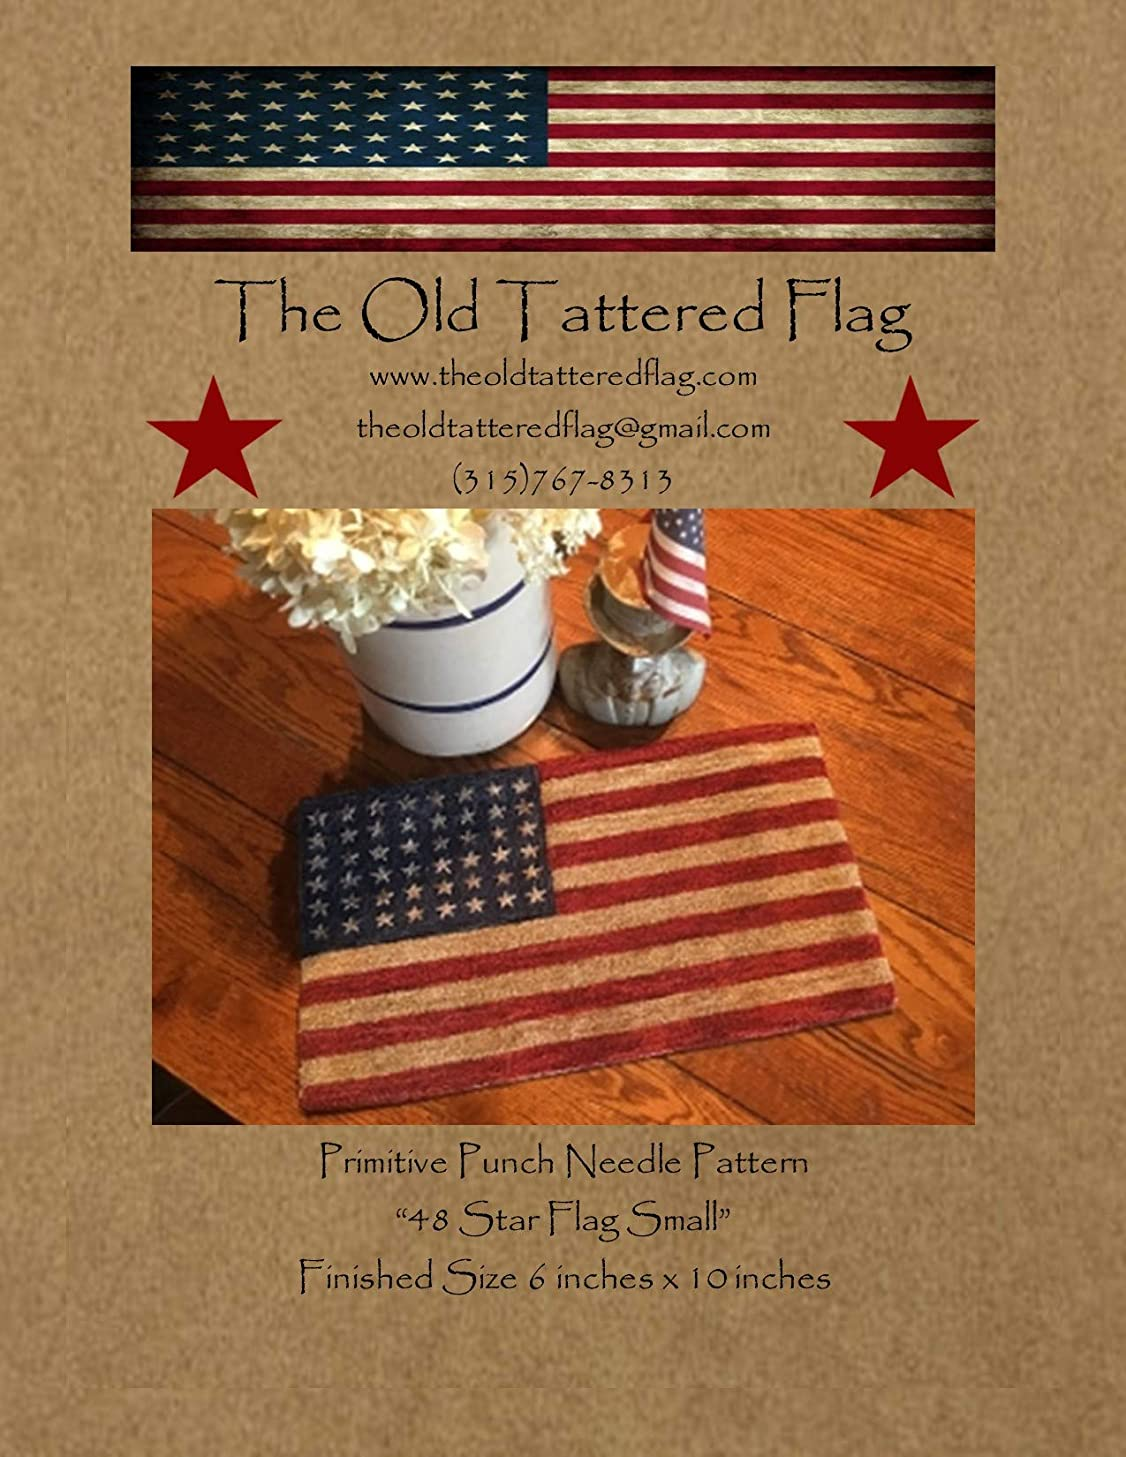 The Old Tattered Flag OTF9780000 48 Star Flag Small Punch Needle Pattern